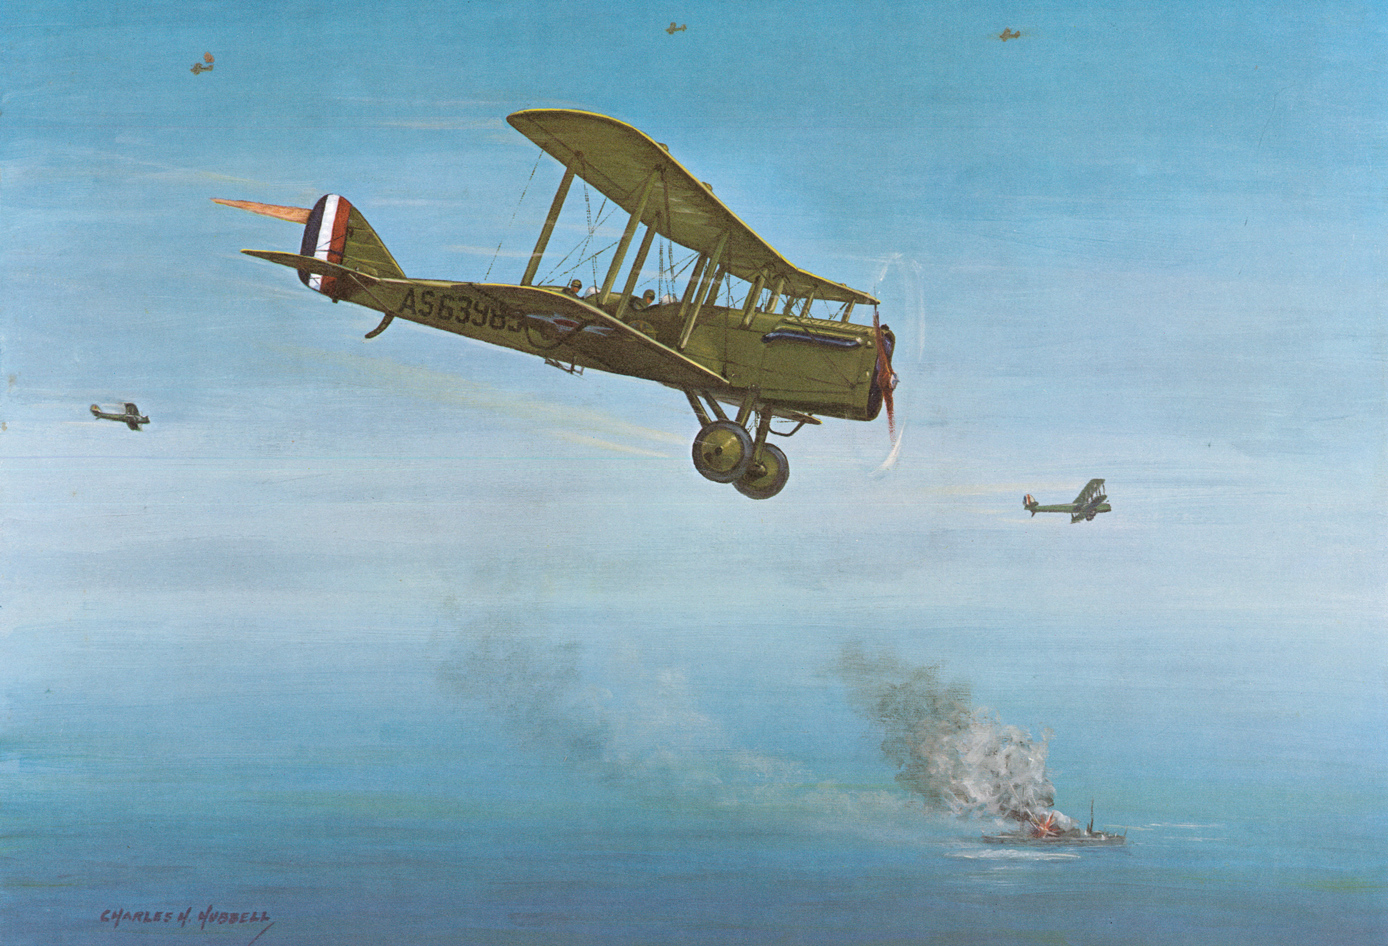 A Charles Hubbell painting of Billy Mitchell's famous moment sinking the German war prize battleships in a demonstration of Strategic Air Power... a heroic act for which he was court martialled! (image via SAC Museum)